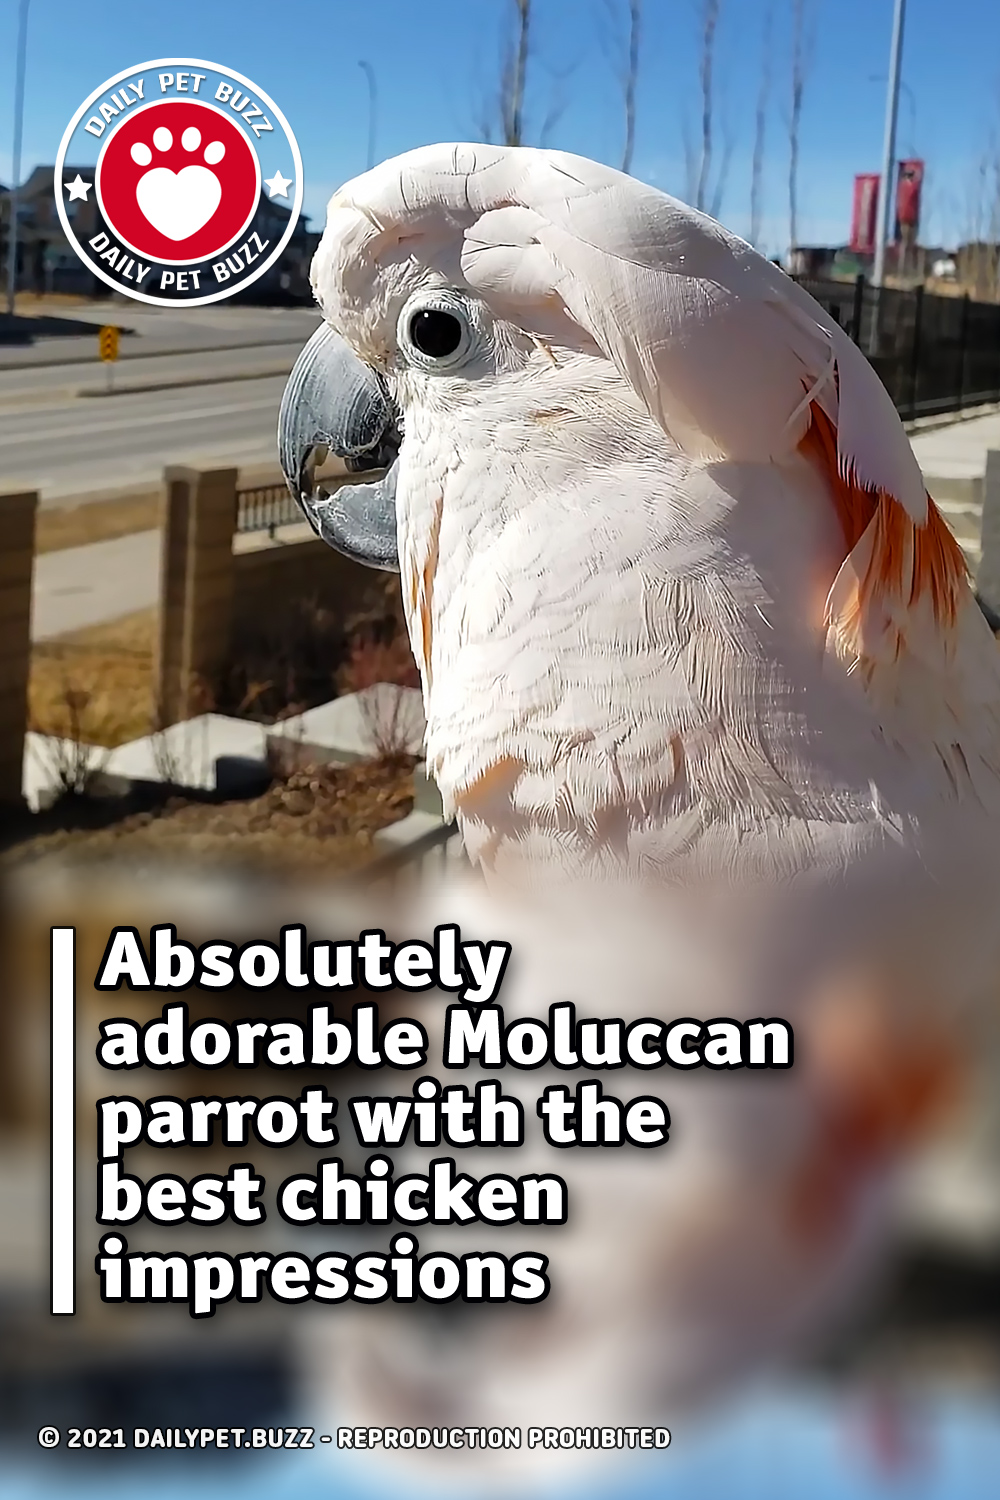 Absolutely adorable Moluccan parrot with the best chicken impressions